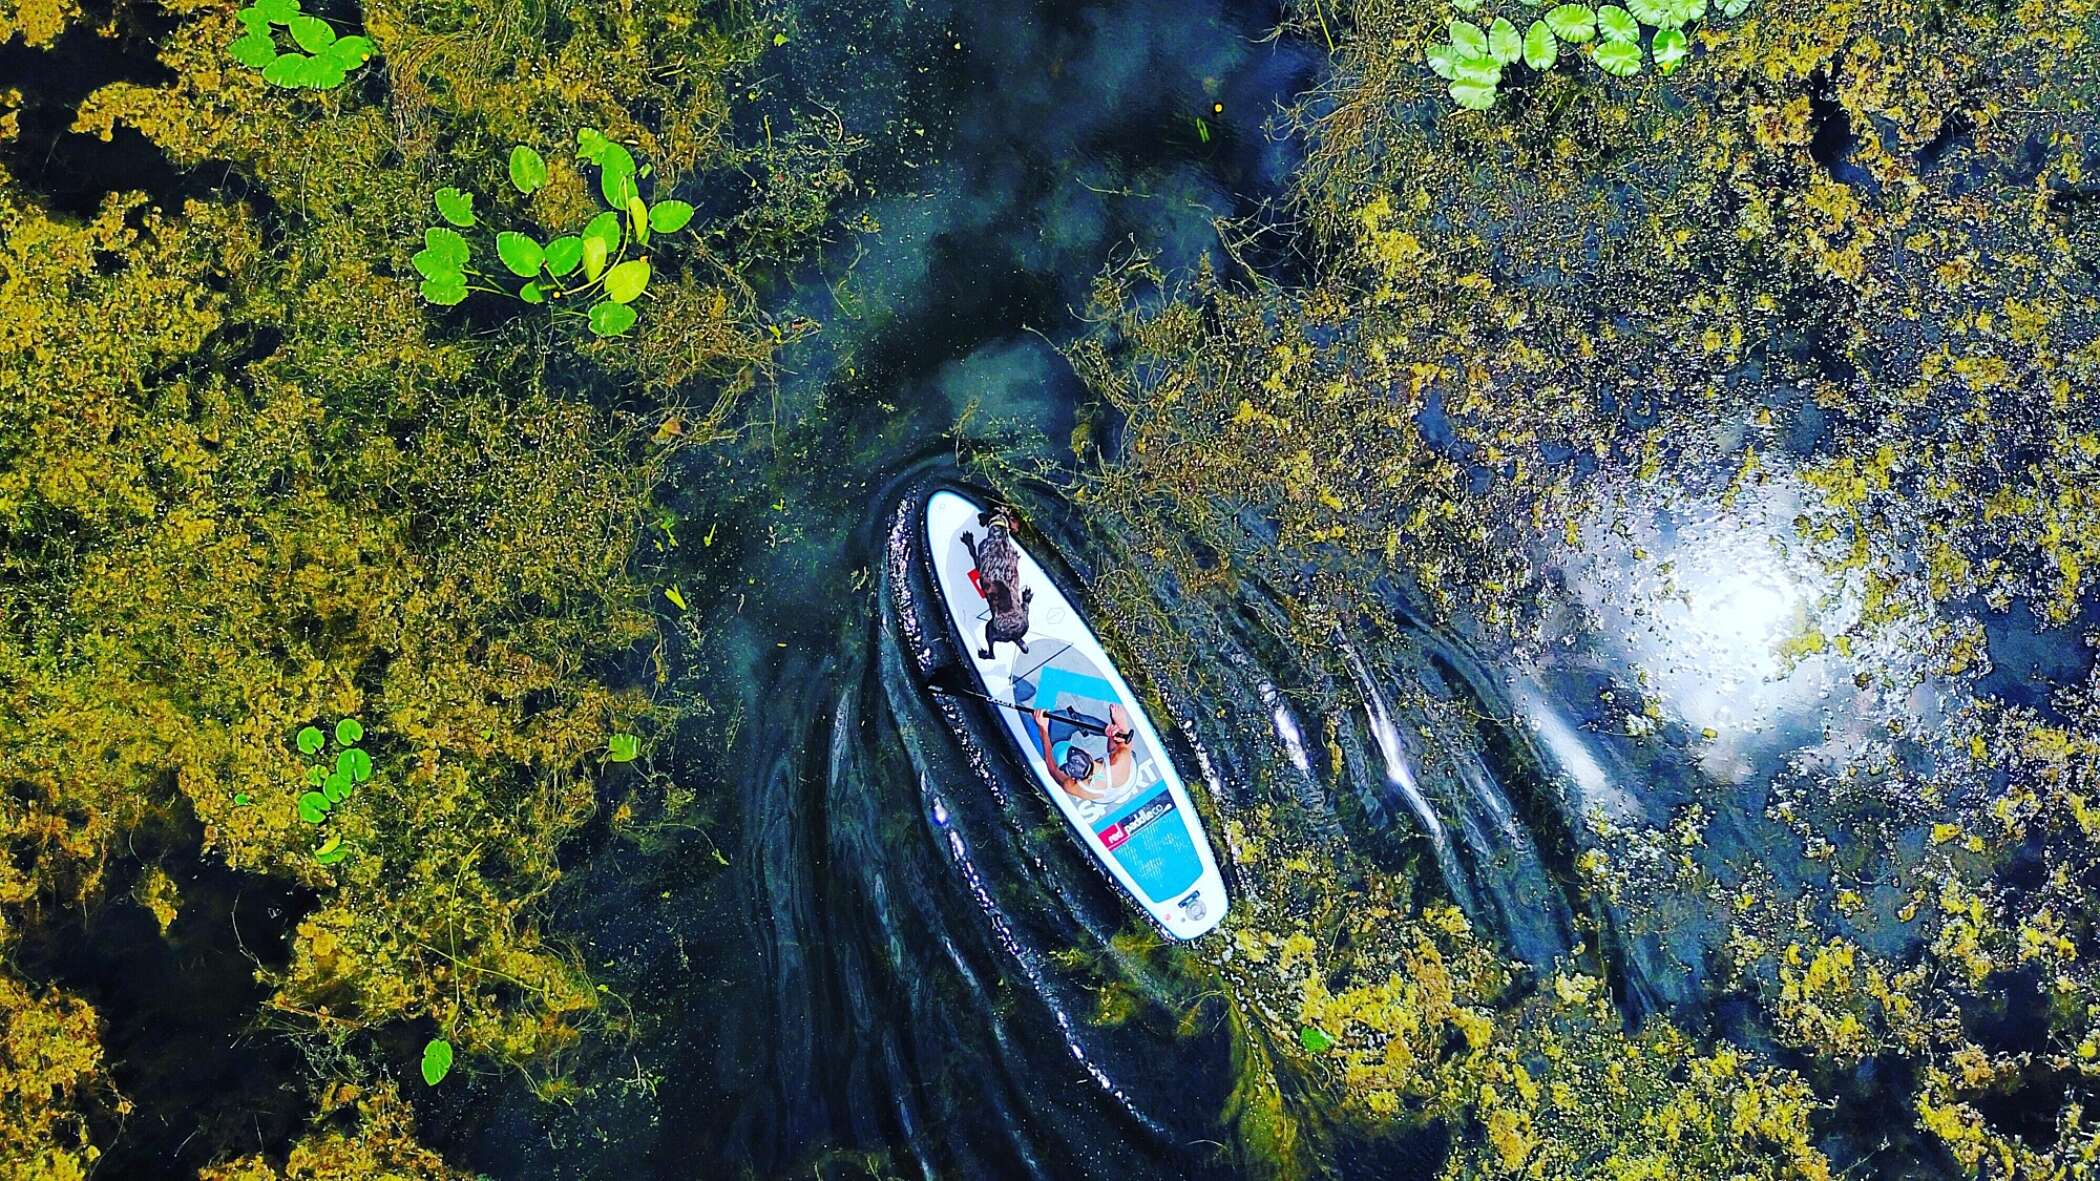 Paddleboarding across a river with a dog, viewed from above